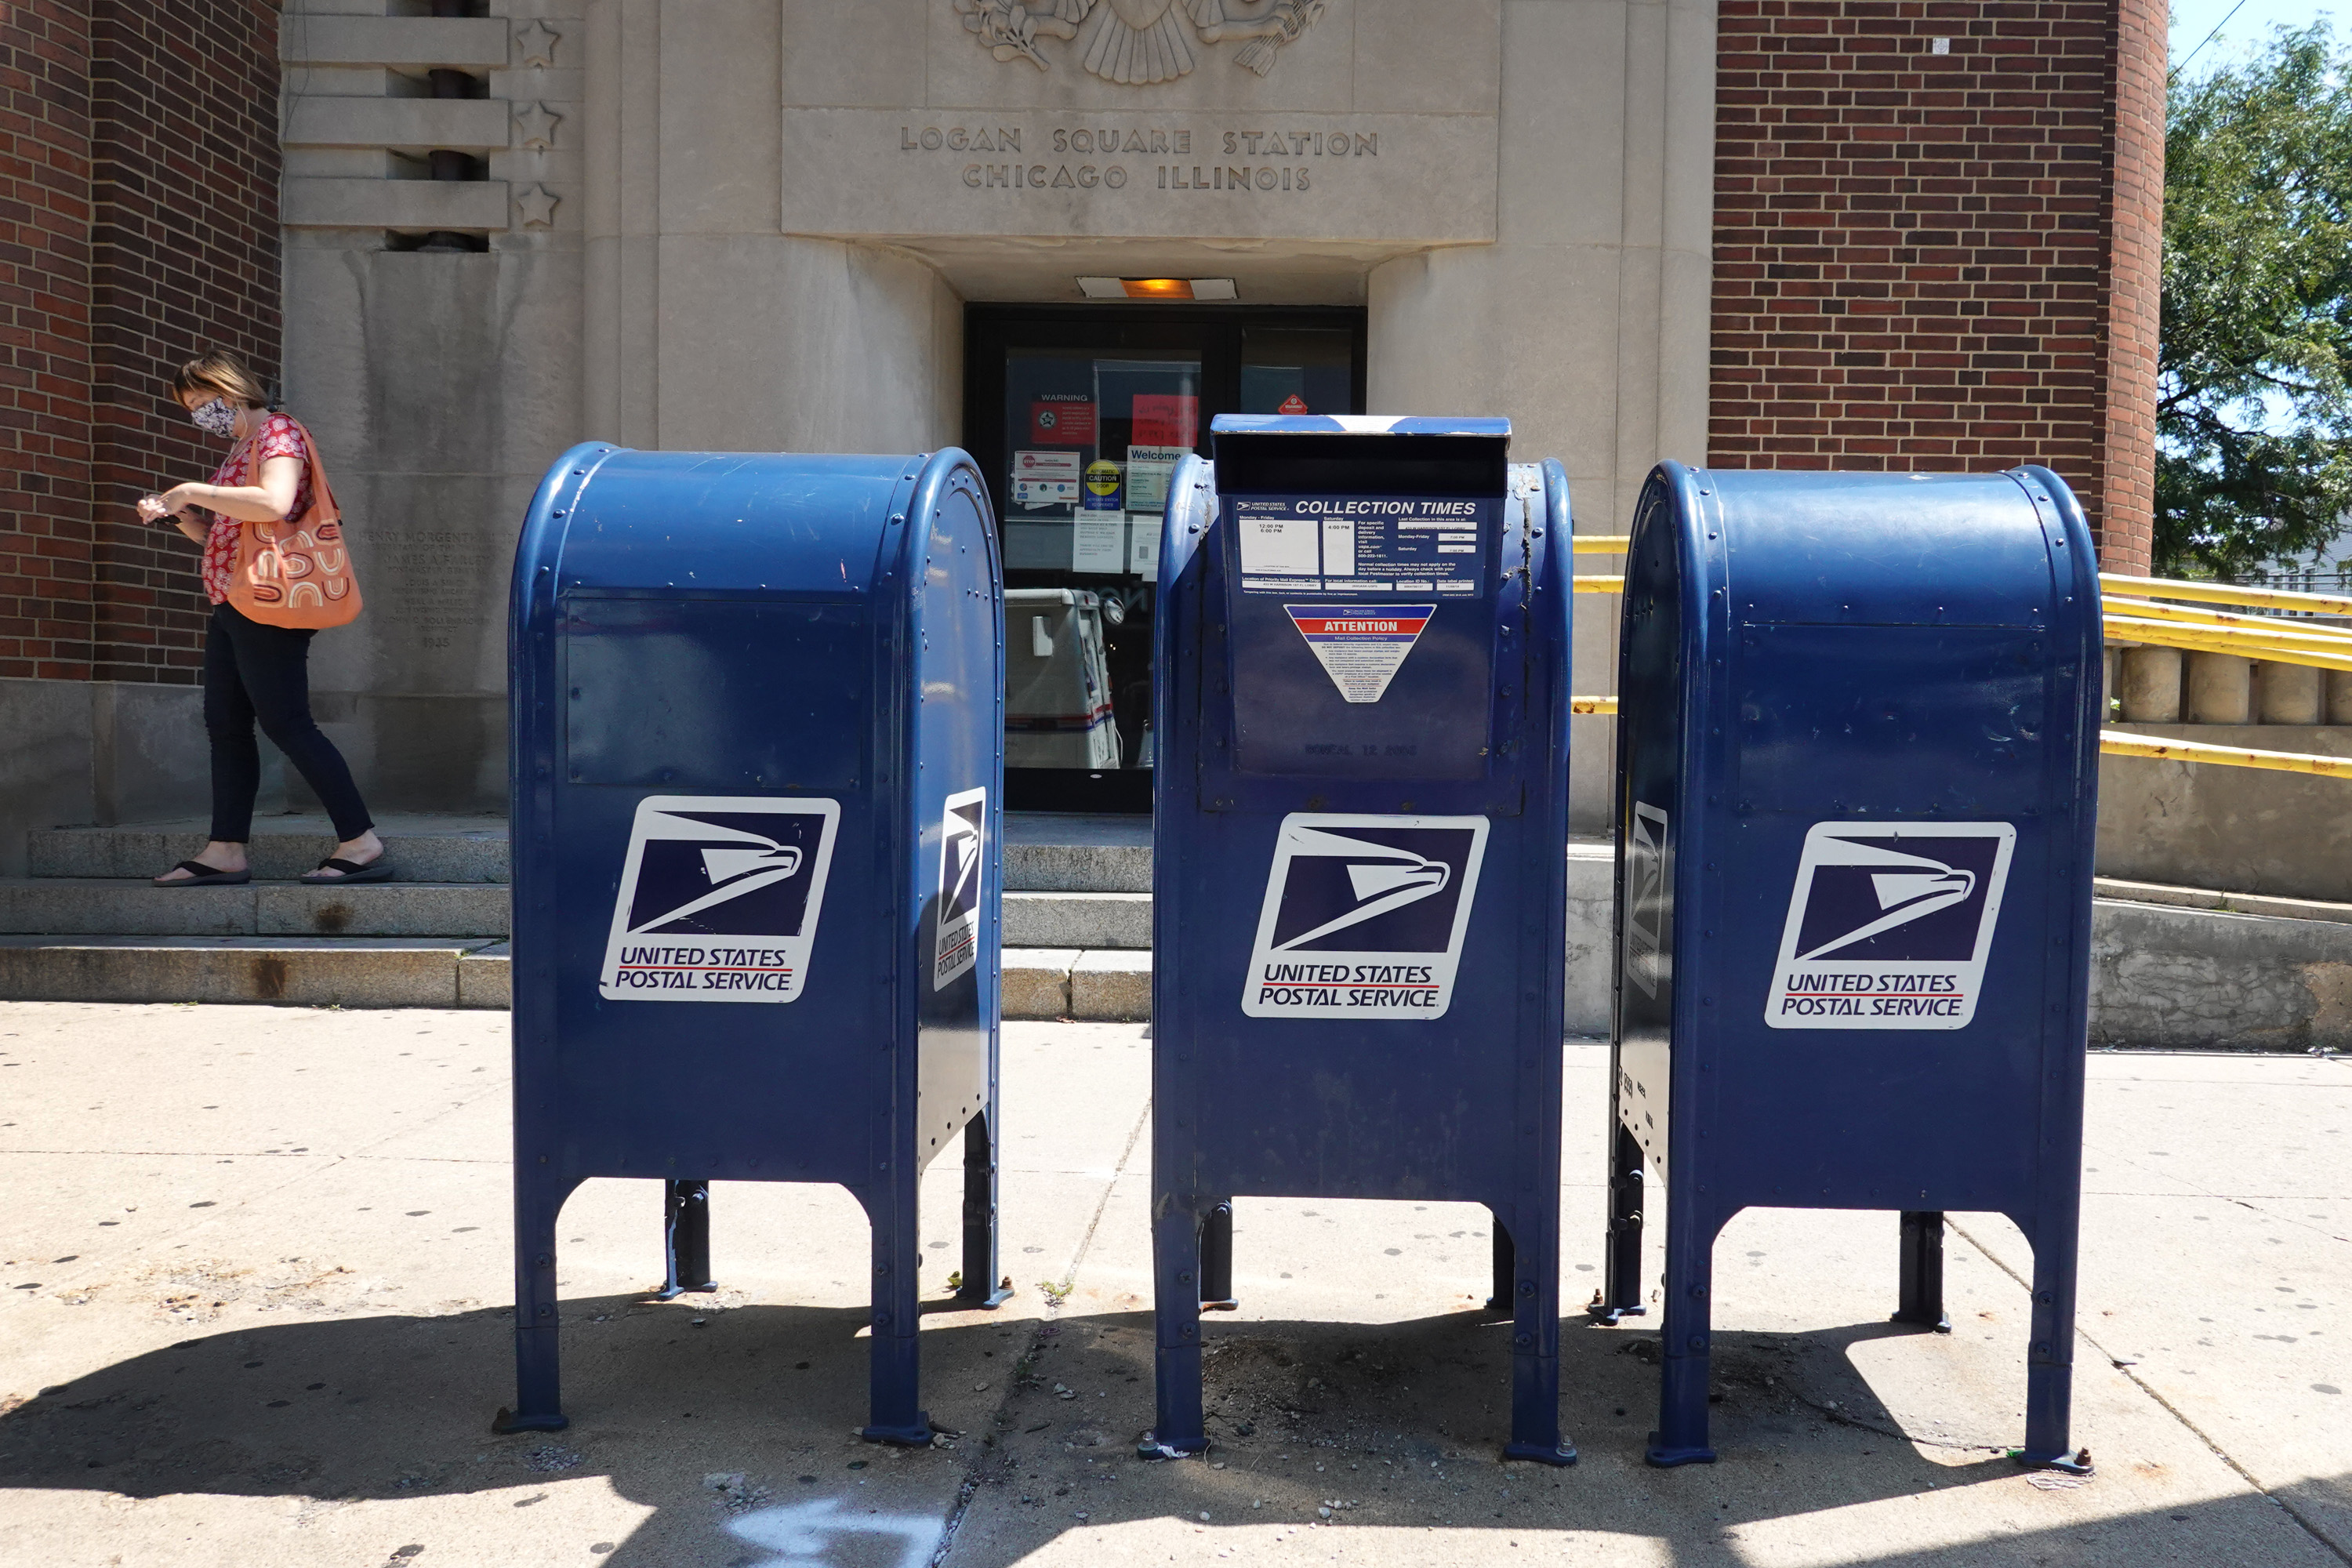 Pictures of Locked Mailboxes Circulate on Twitter Amid USPS Crisis